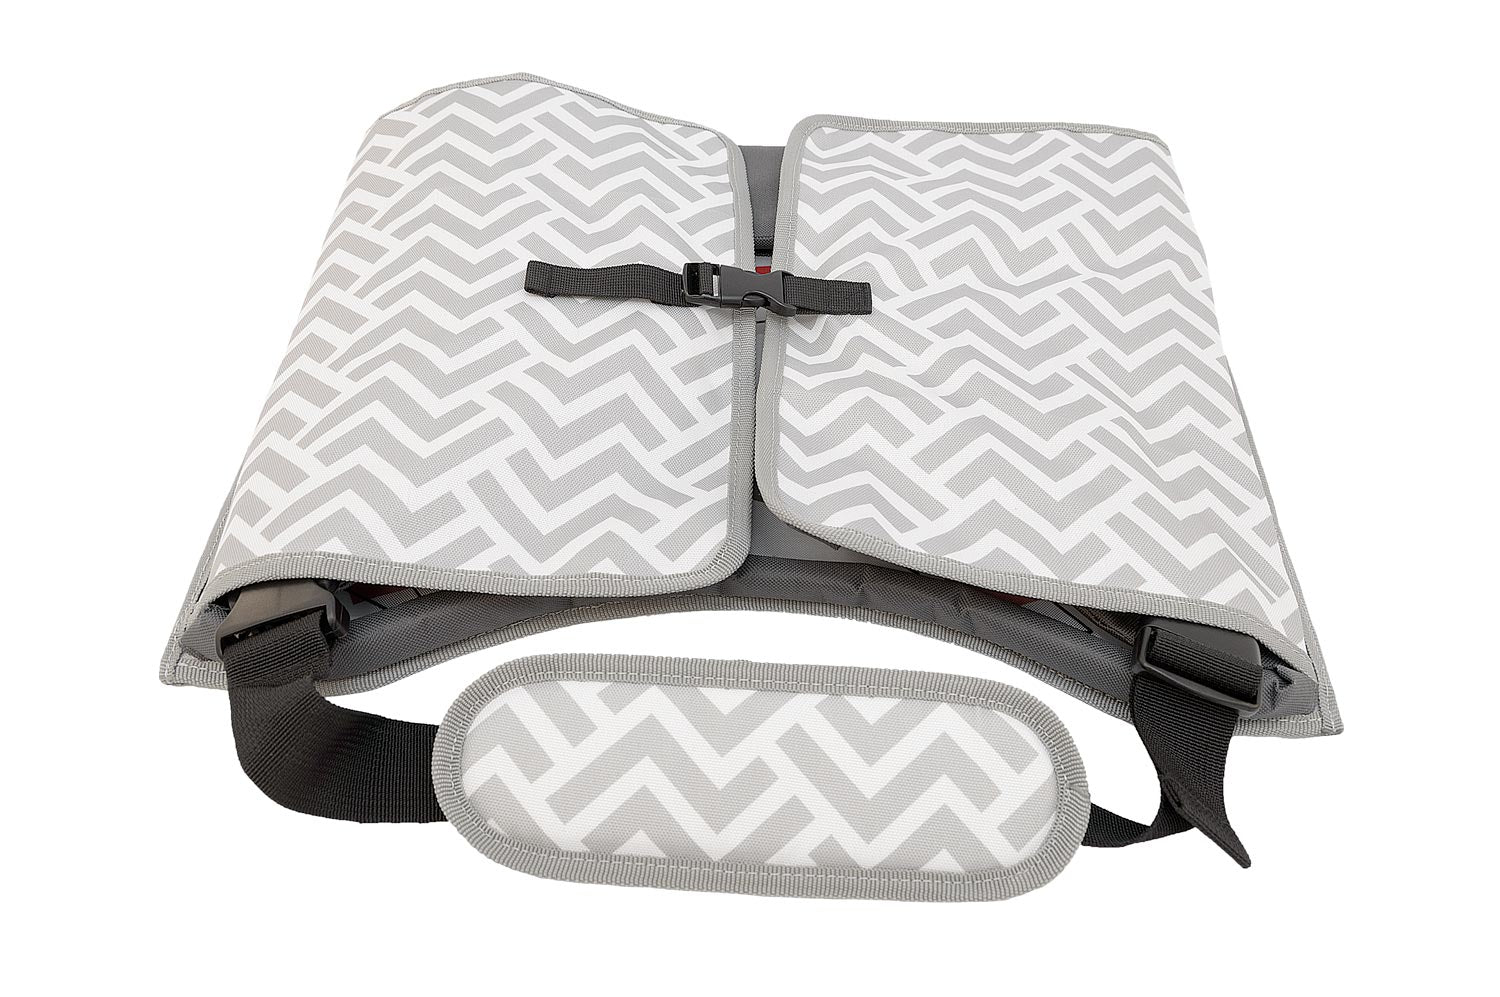 Kenley Kids travel tray folded bag portable chevron